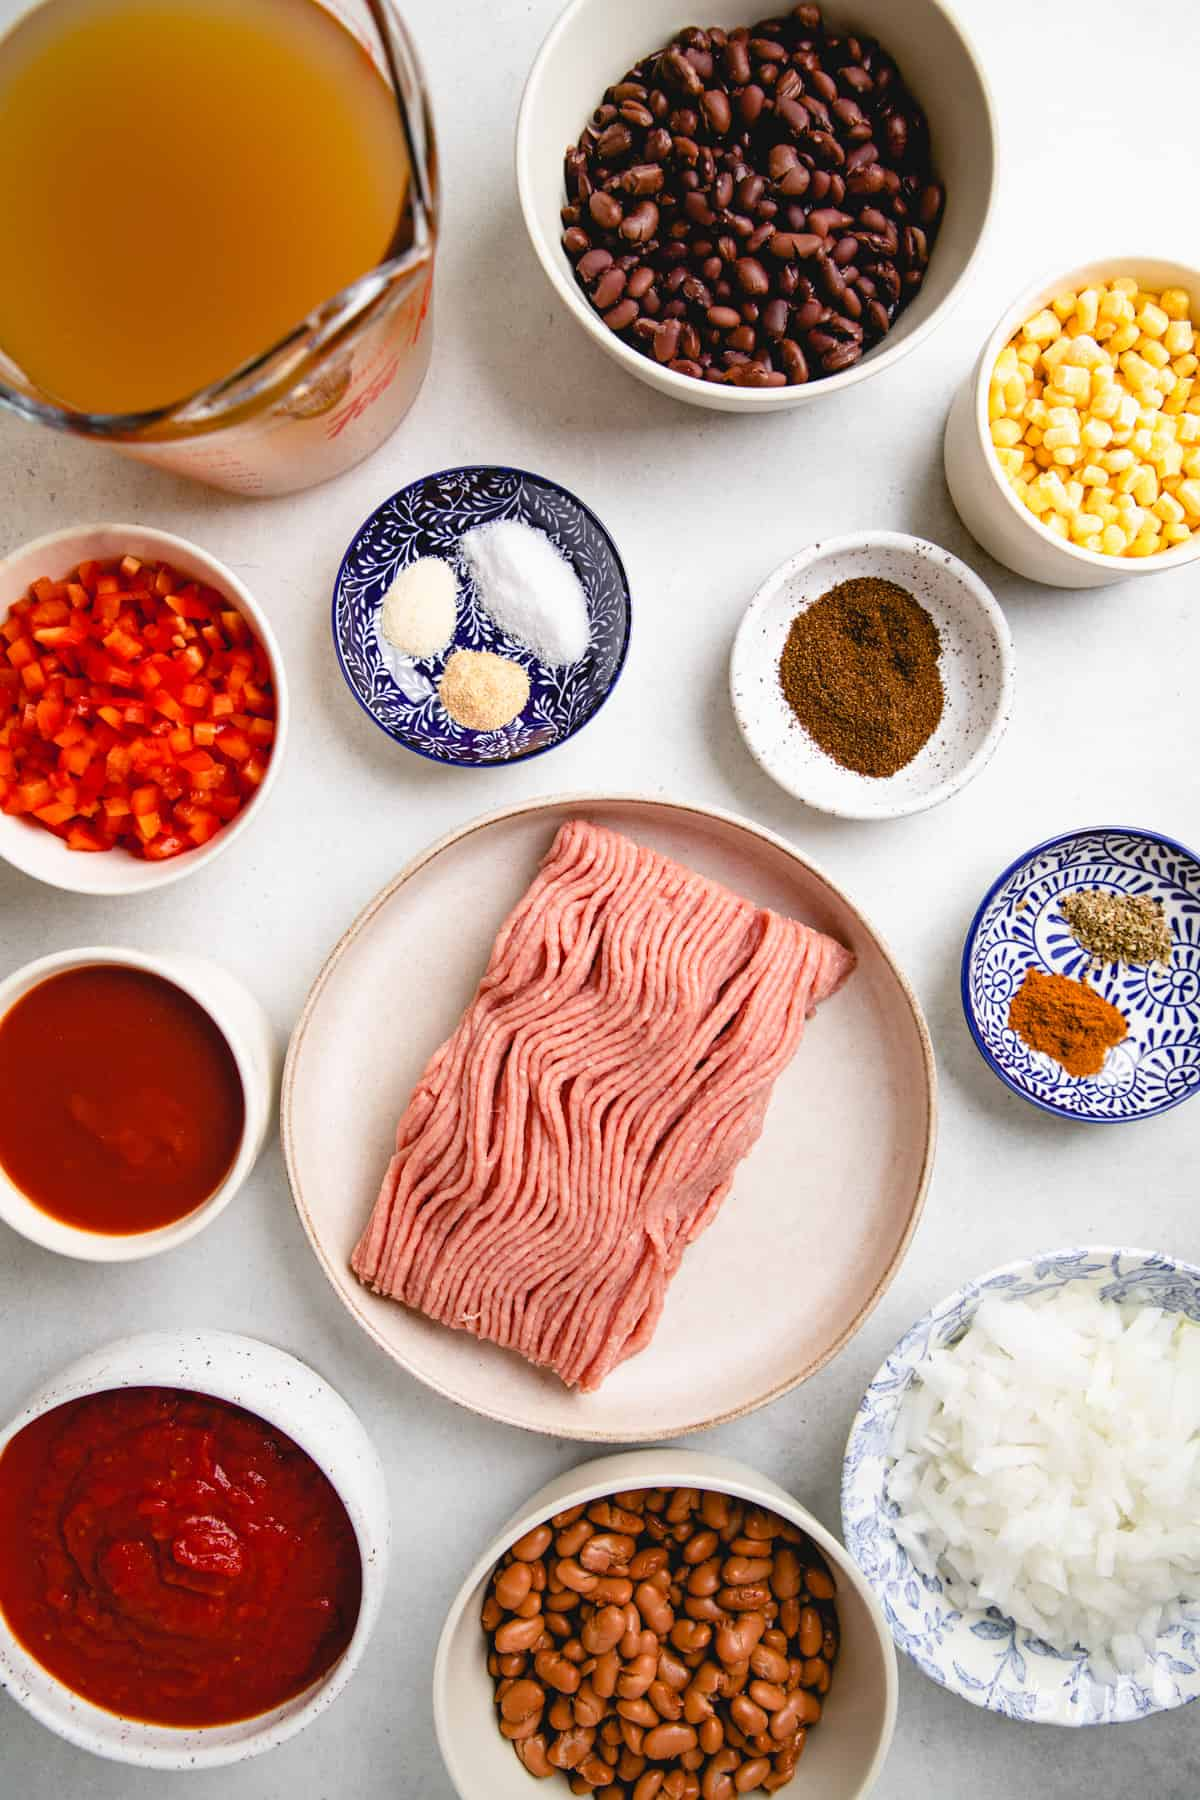 Ingredients for Instant Pot Taco Soup.